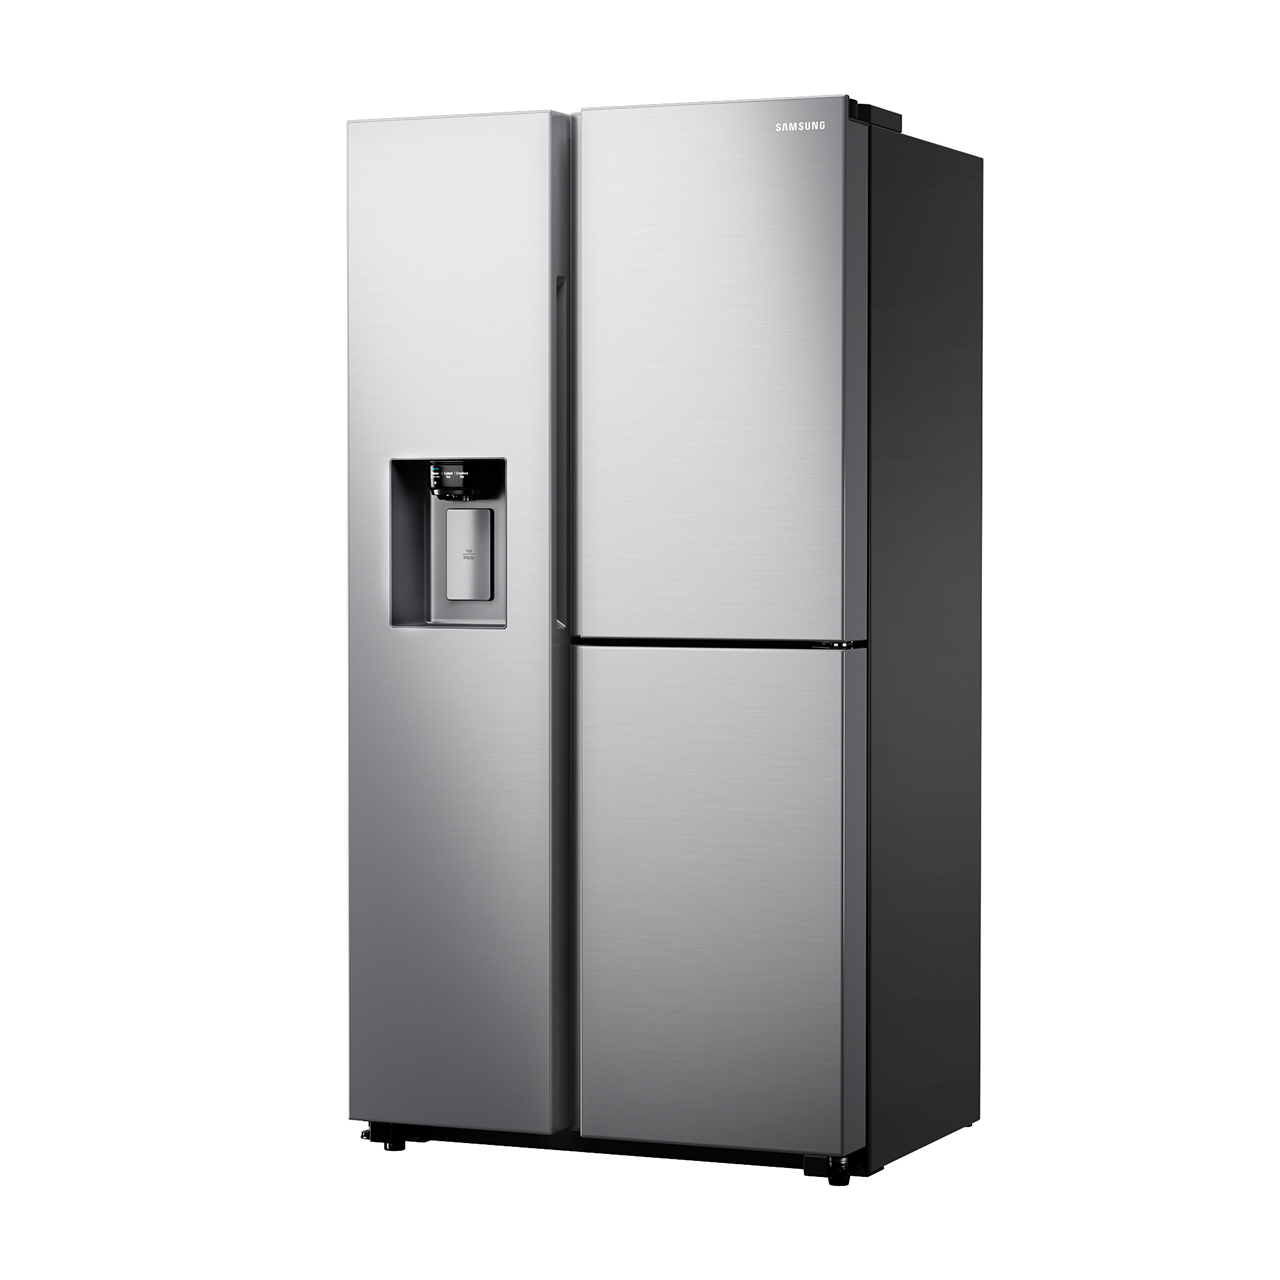 RS8000 3 Door Side-by-Side Fridge Freezer 178 cm by Samsung